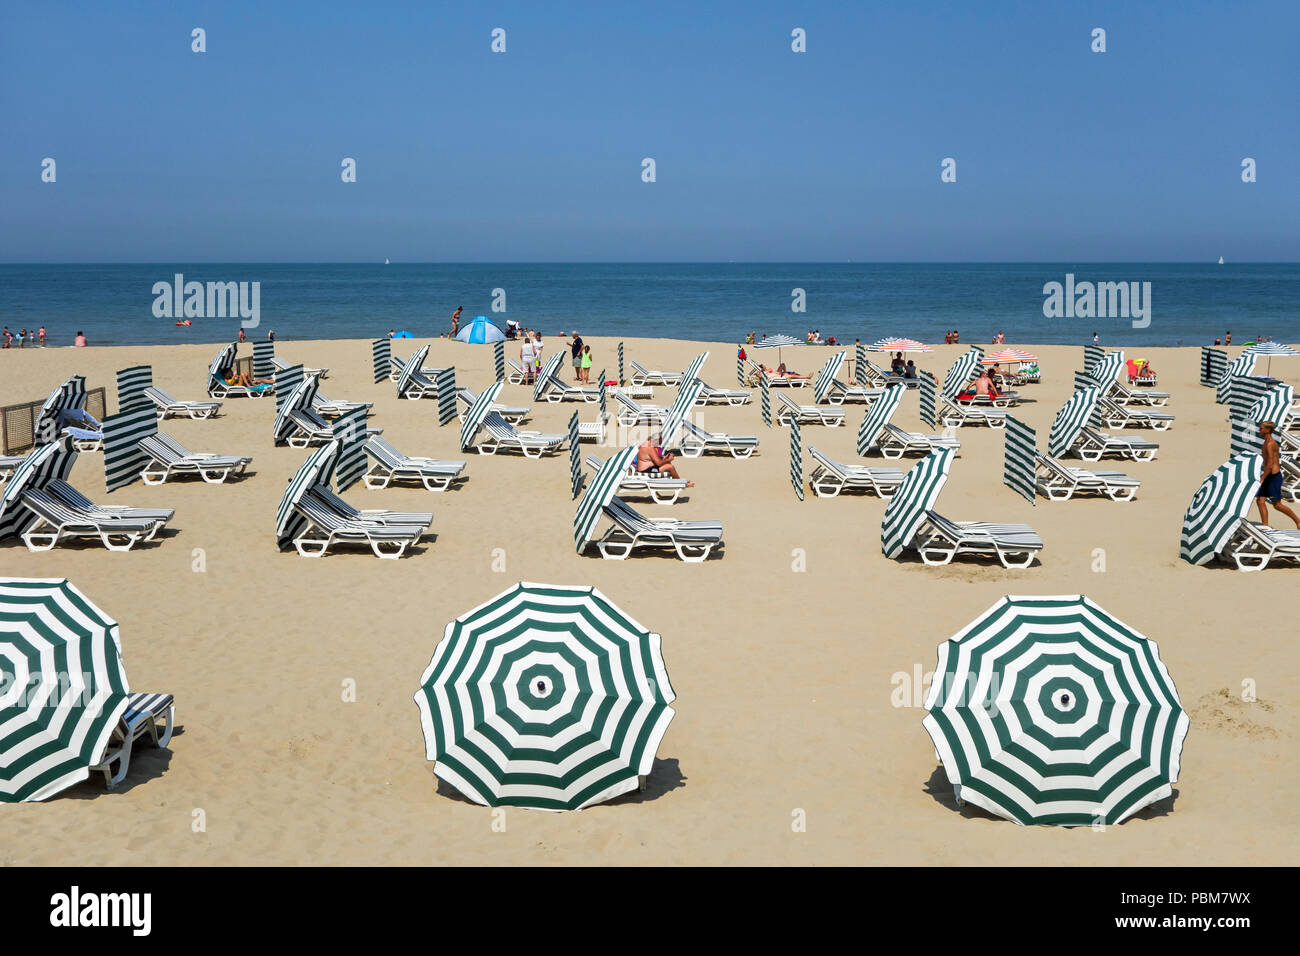 Mostly empty reclining seats / beach chairs and parasols at Belgian seaside resort due to heatwave during summer holidays along the North Sea coast - Stock Image